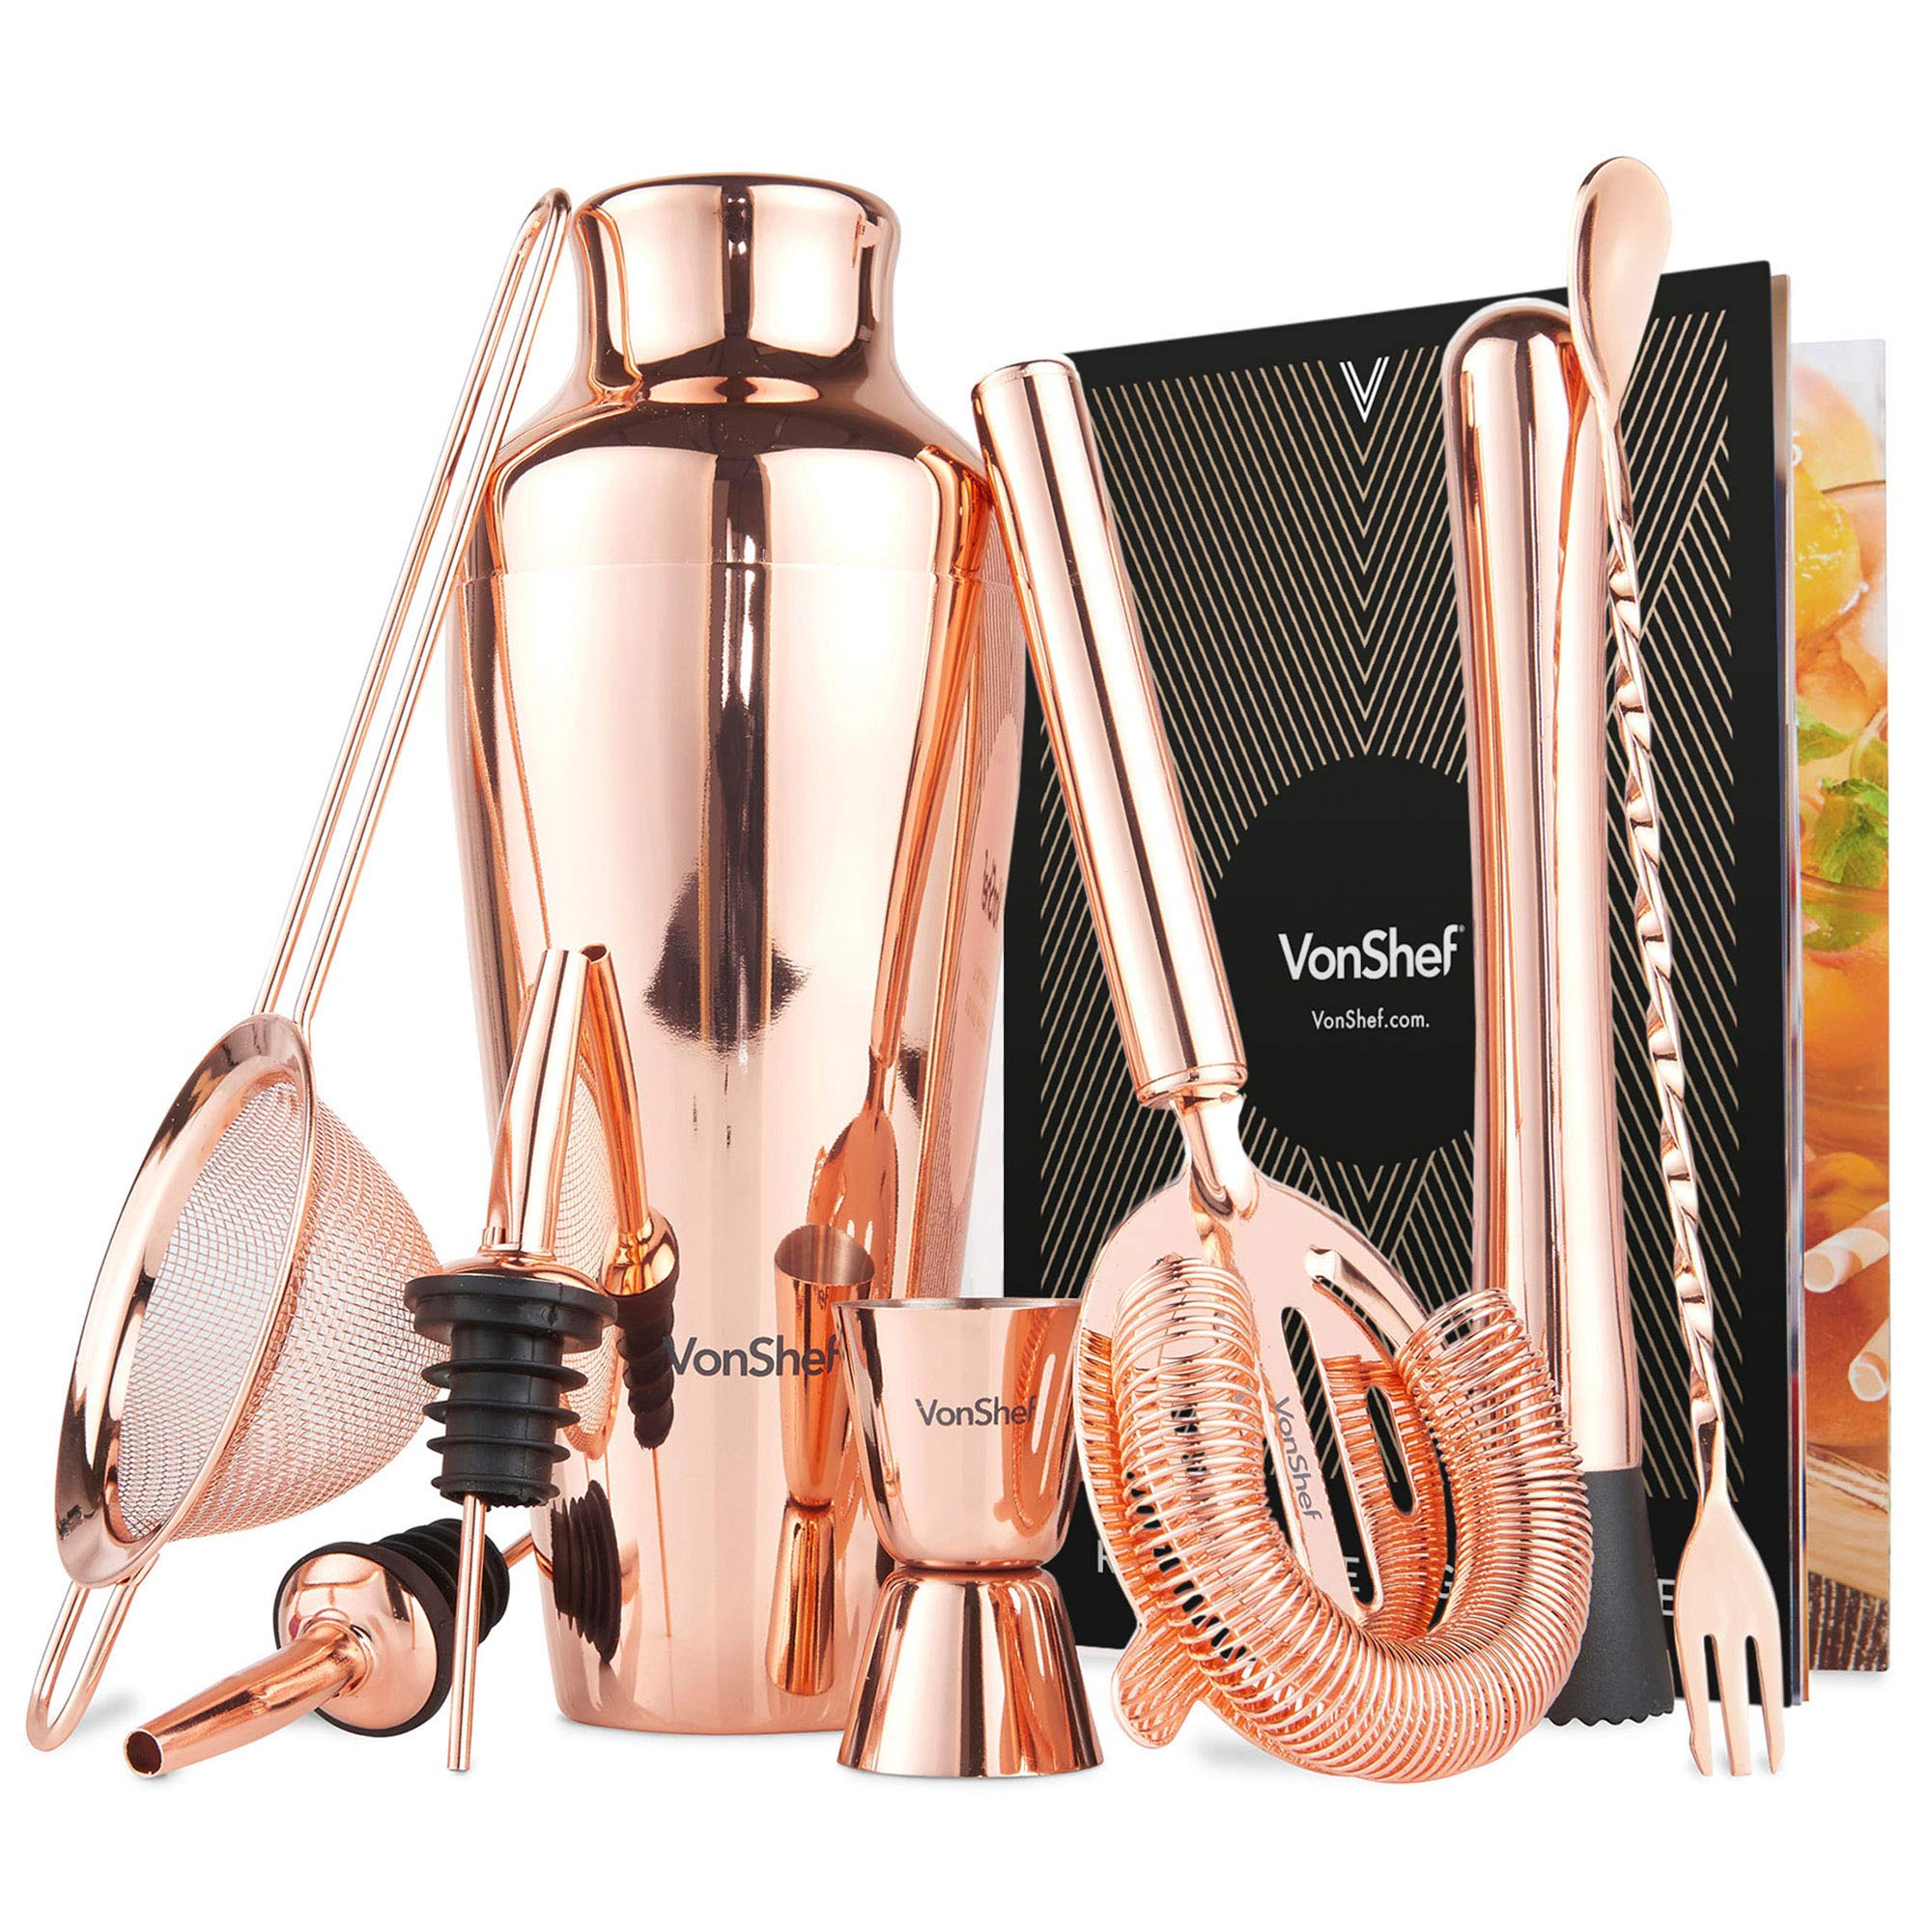 VonShef Parisian Cocktail Shaker Barware Set in Gift Box with Recipe Guide, Cocktail Strainers, Twisted Bar Spoon, Jigger, Muddler and Pourers, Copper, 9 Piece Set, 17oz